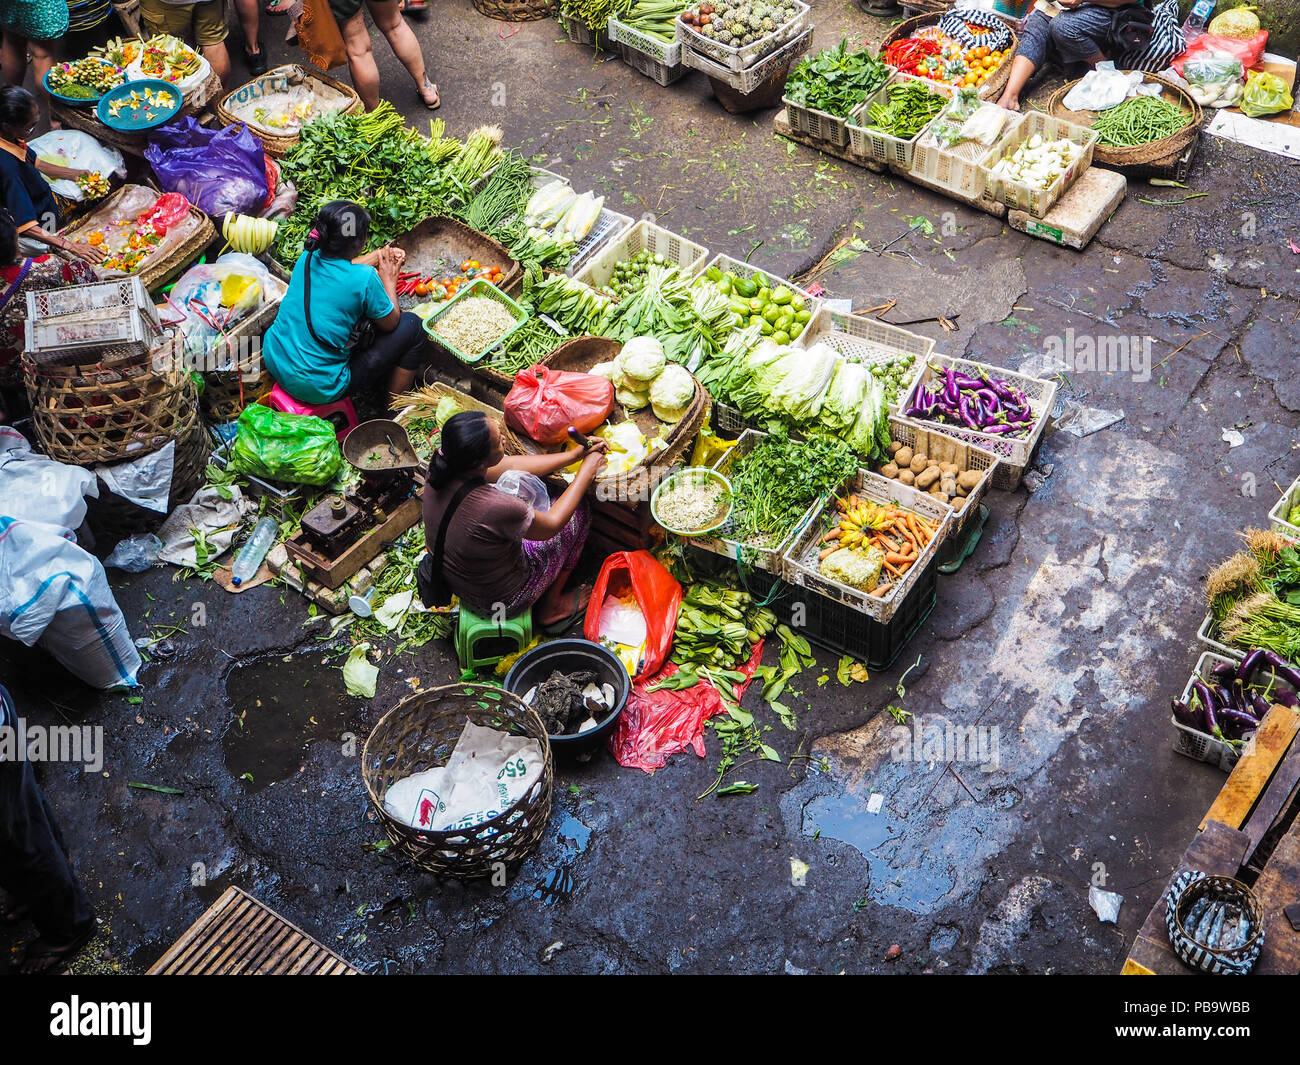 Bali, Indonesia - April 2017: Women selling fresh food at the market in central Ubud - Stock Image